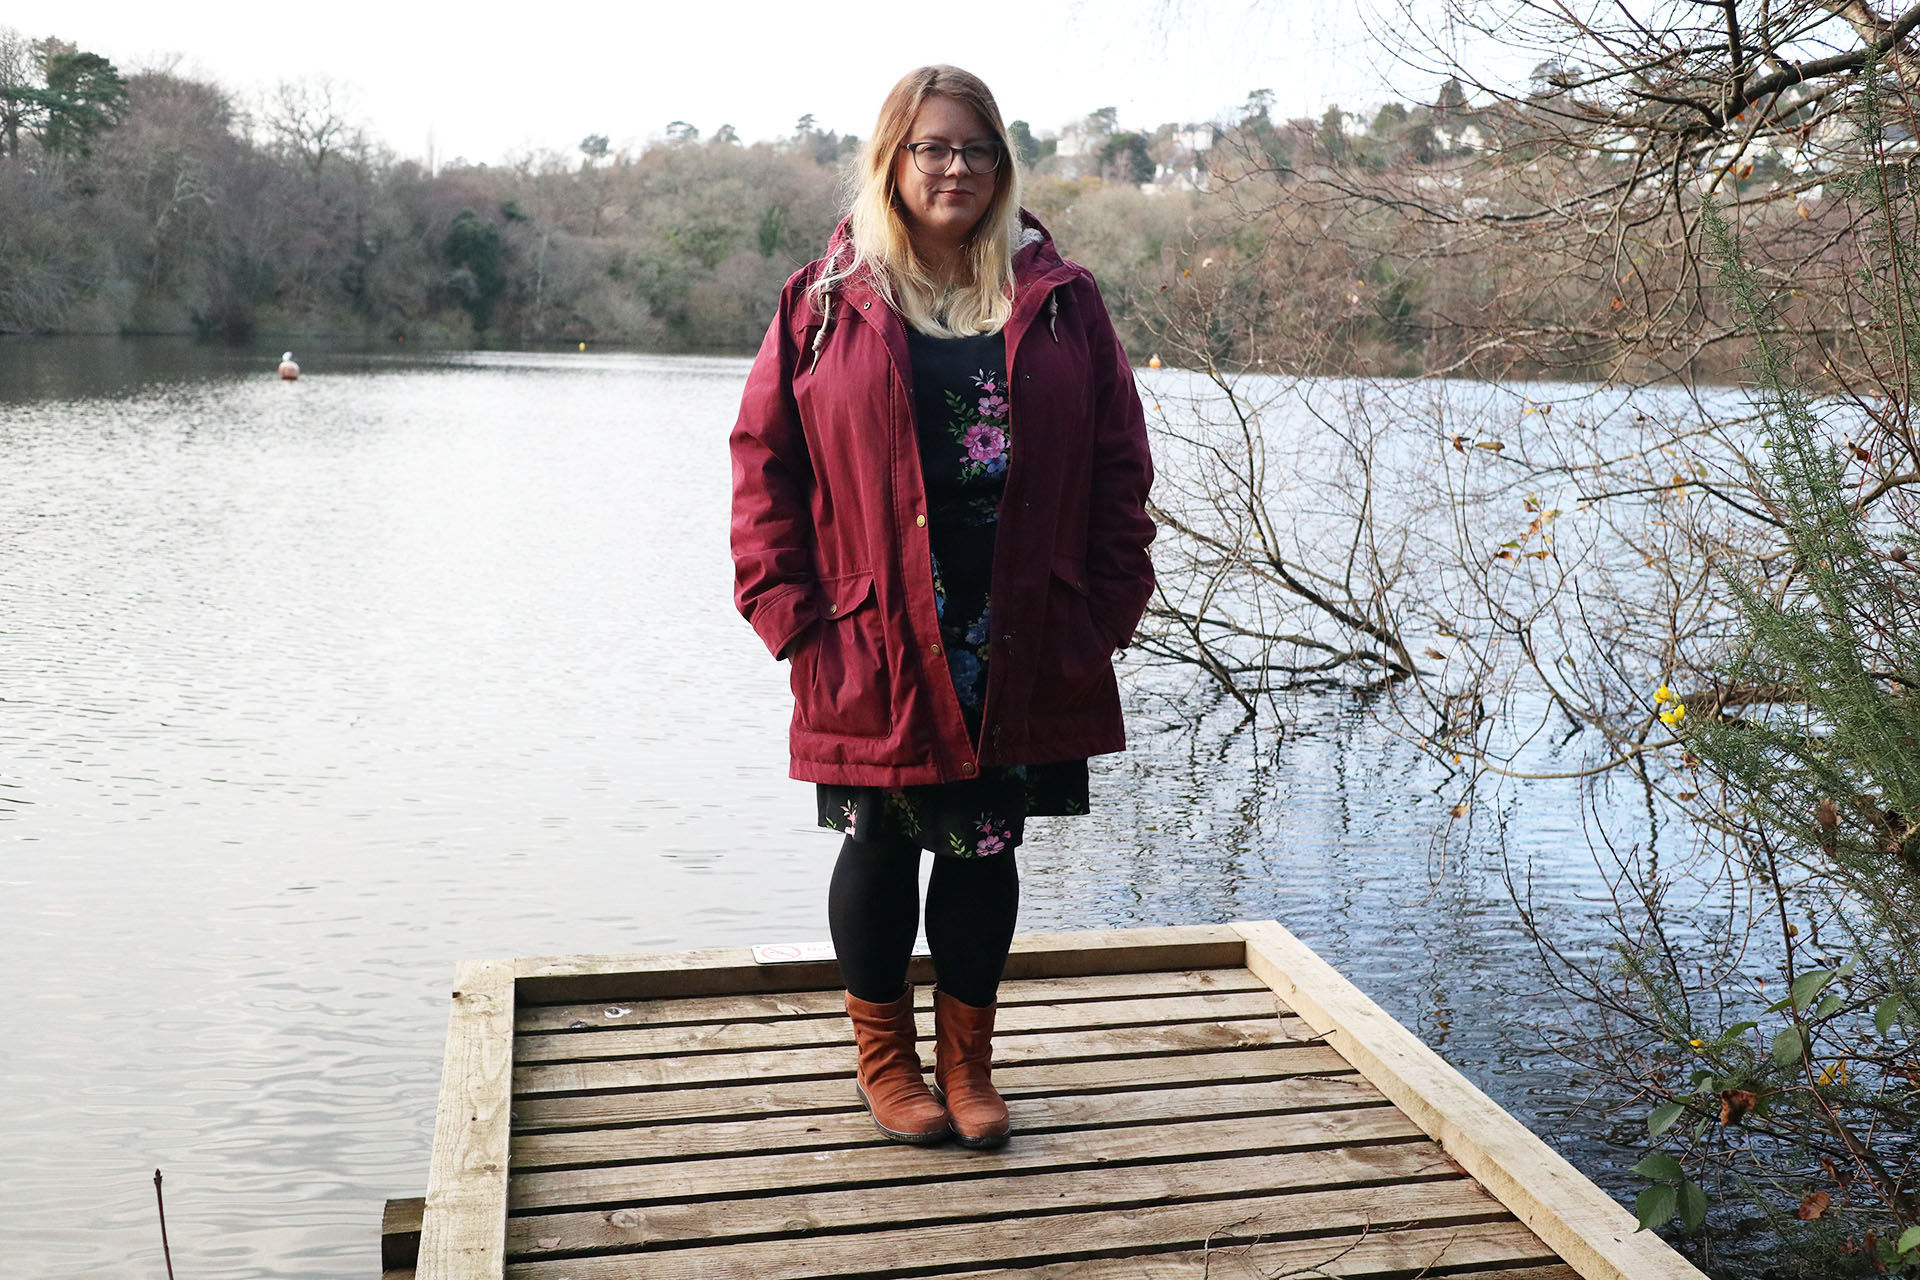 Standing near a lake wearing a red coat and a pair of Pixie boots from Hotter Shoes